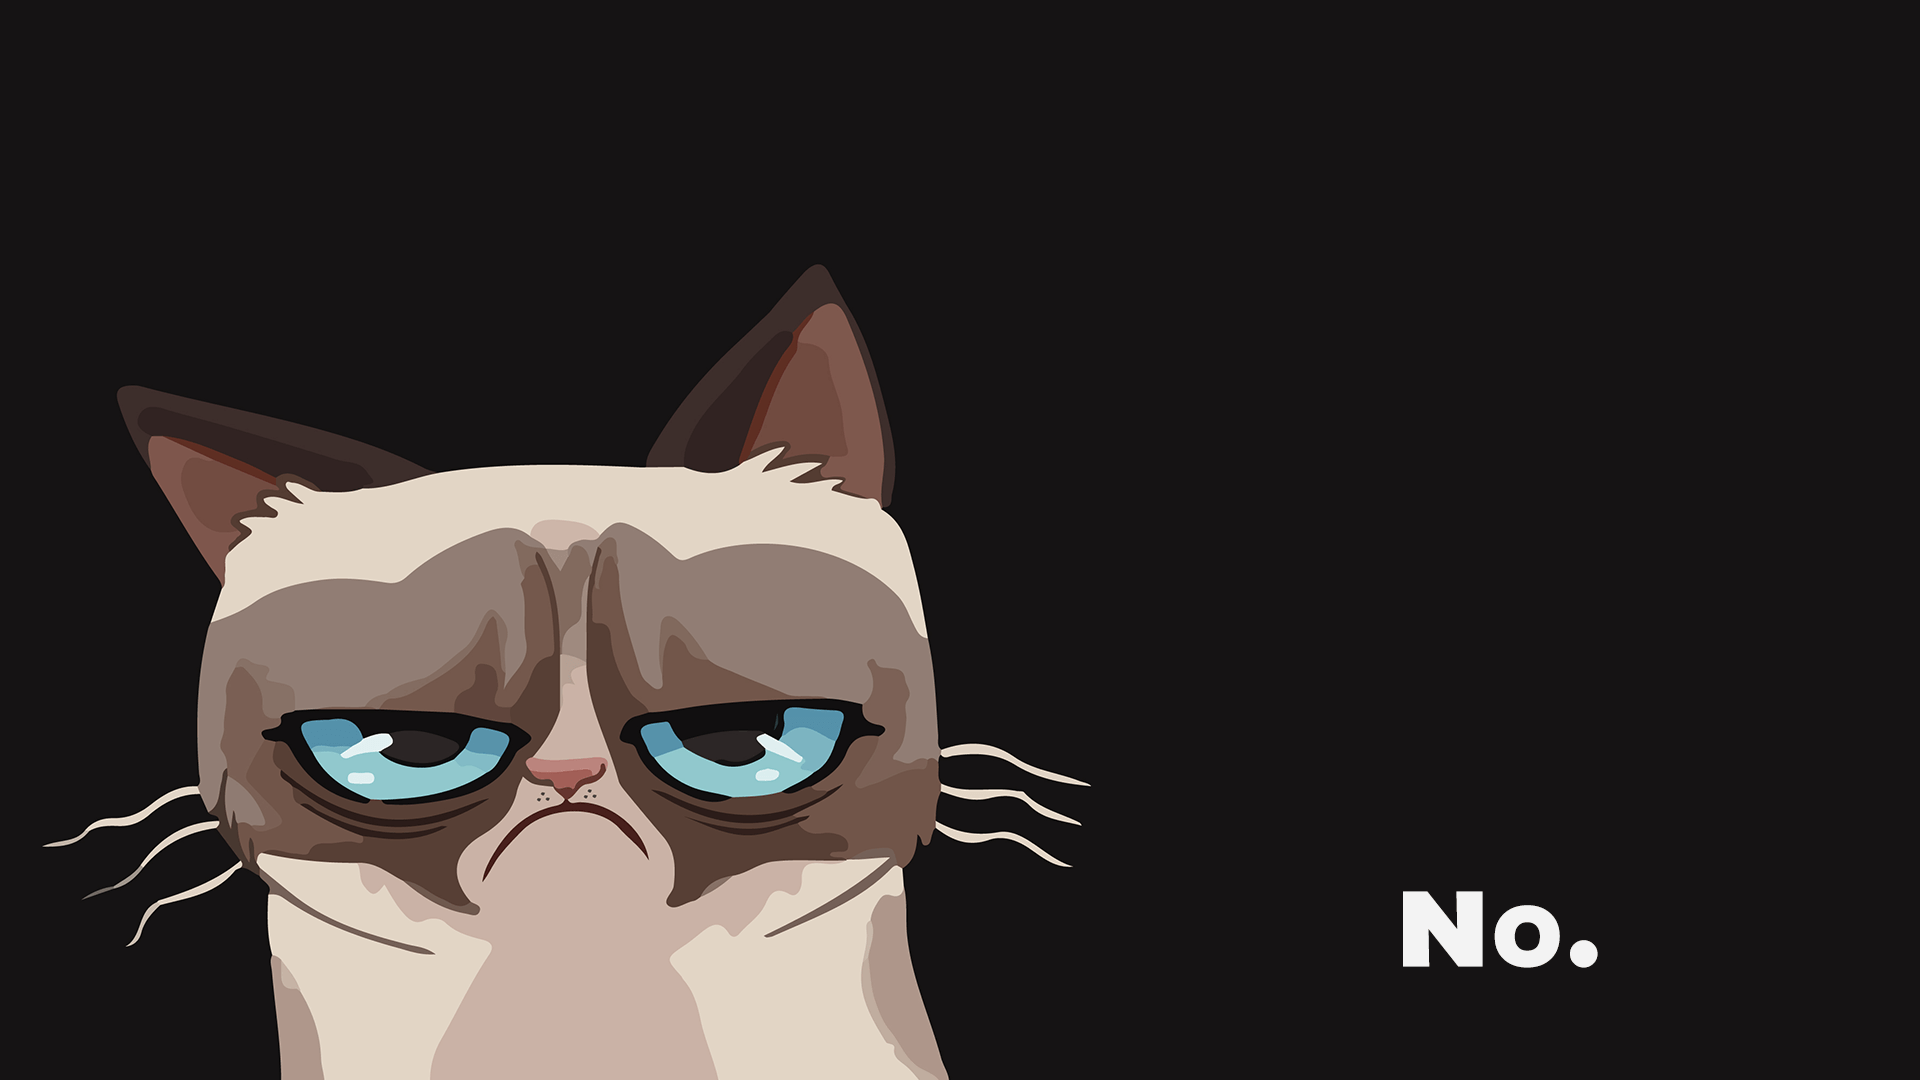 Grumpy Cat Wallpaper 5 1920x1080 1113 Kitten Res